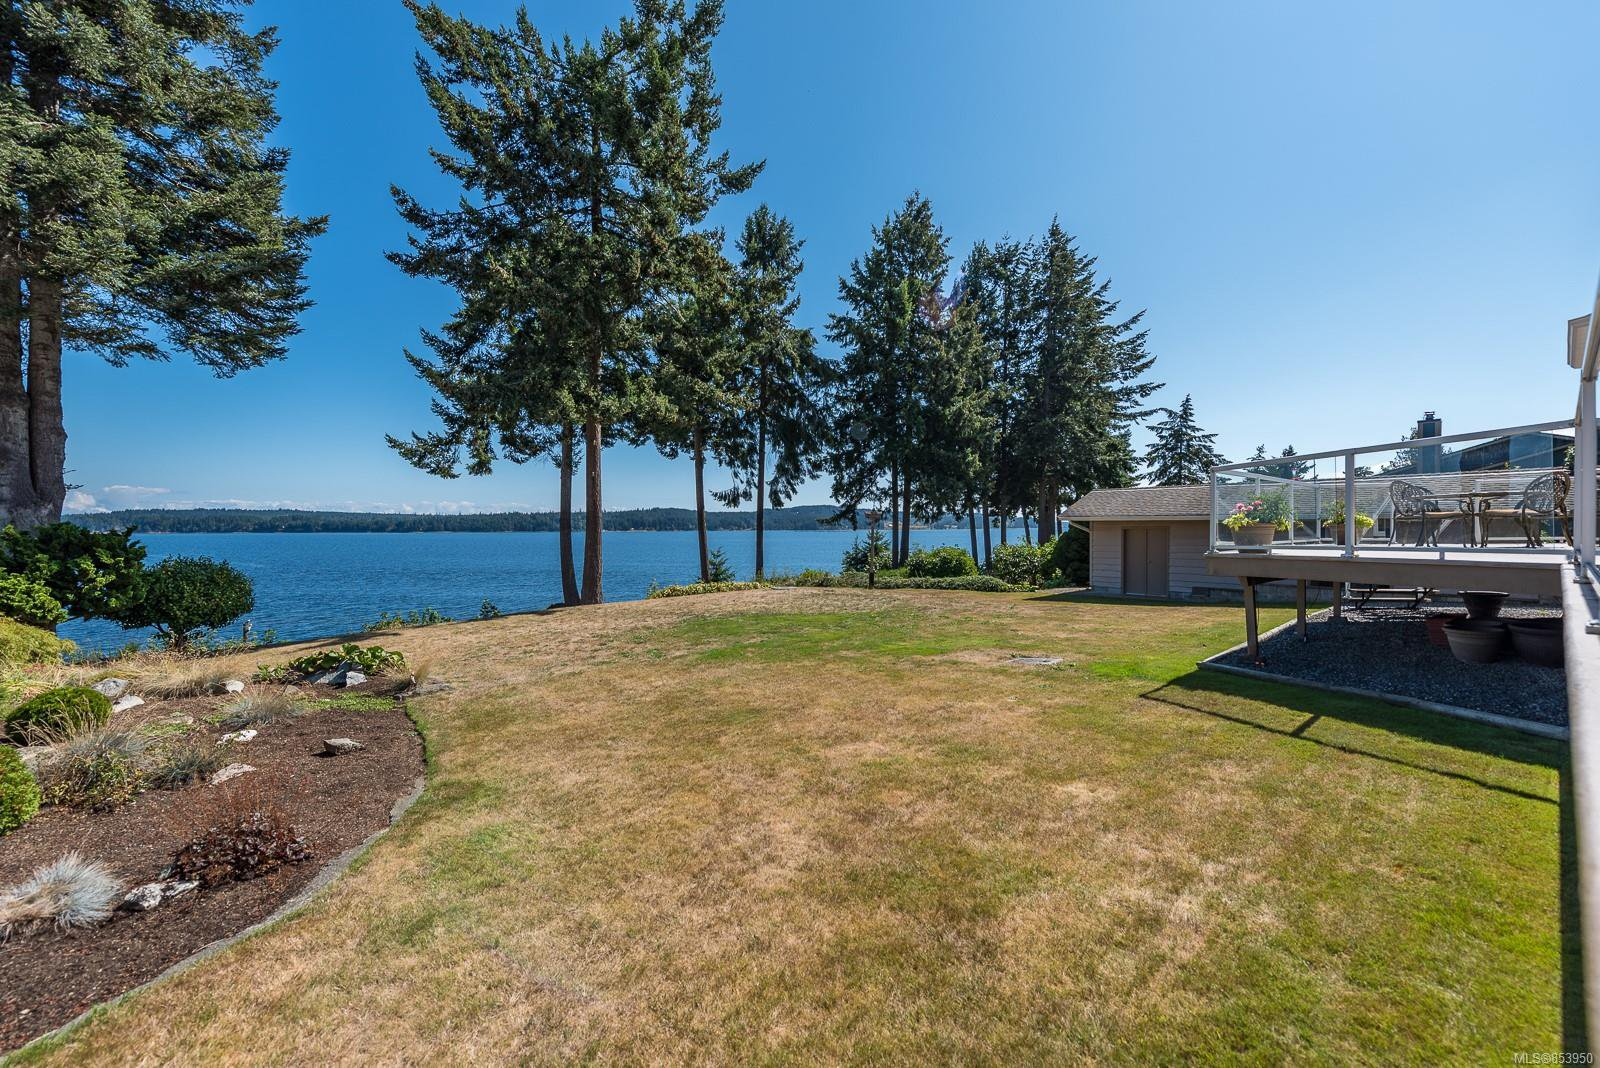 Photo 42: Photos: 5880 GARVIN Rd in : CV Union Bay/Fanny Bay House for sale (Comox Valley)  : MLS®# 853950